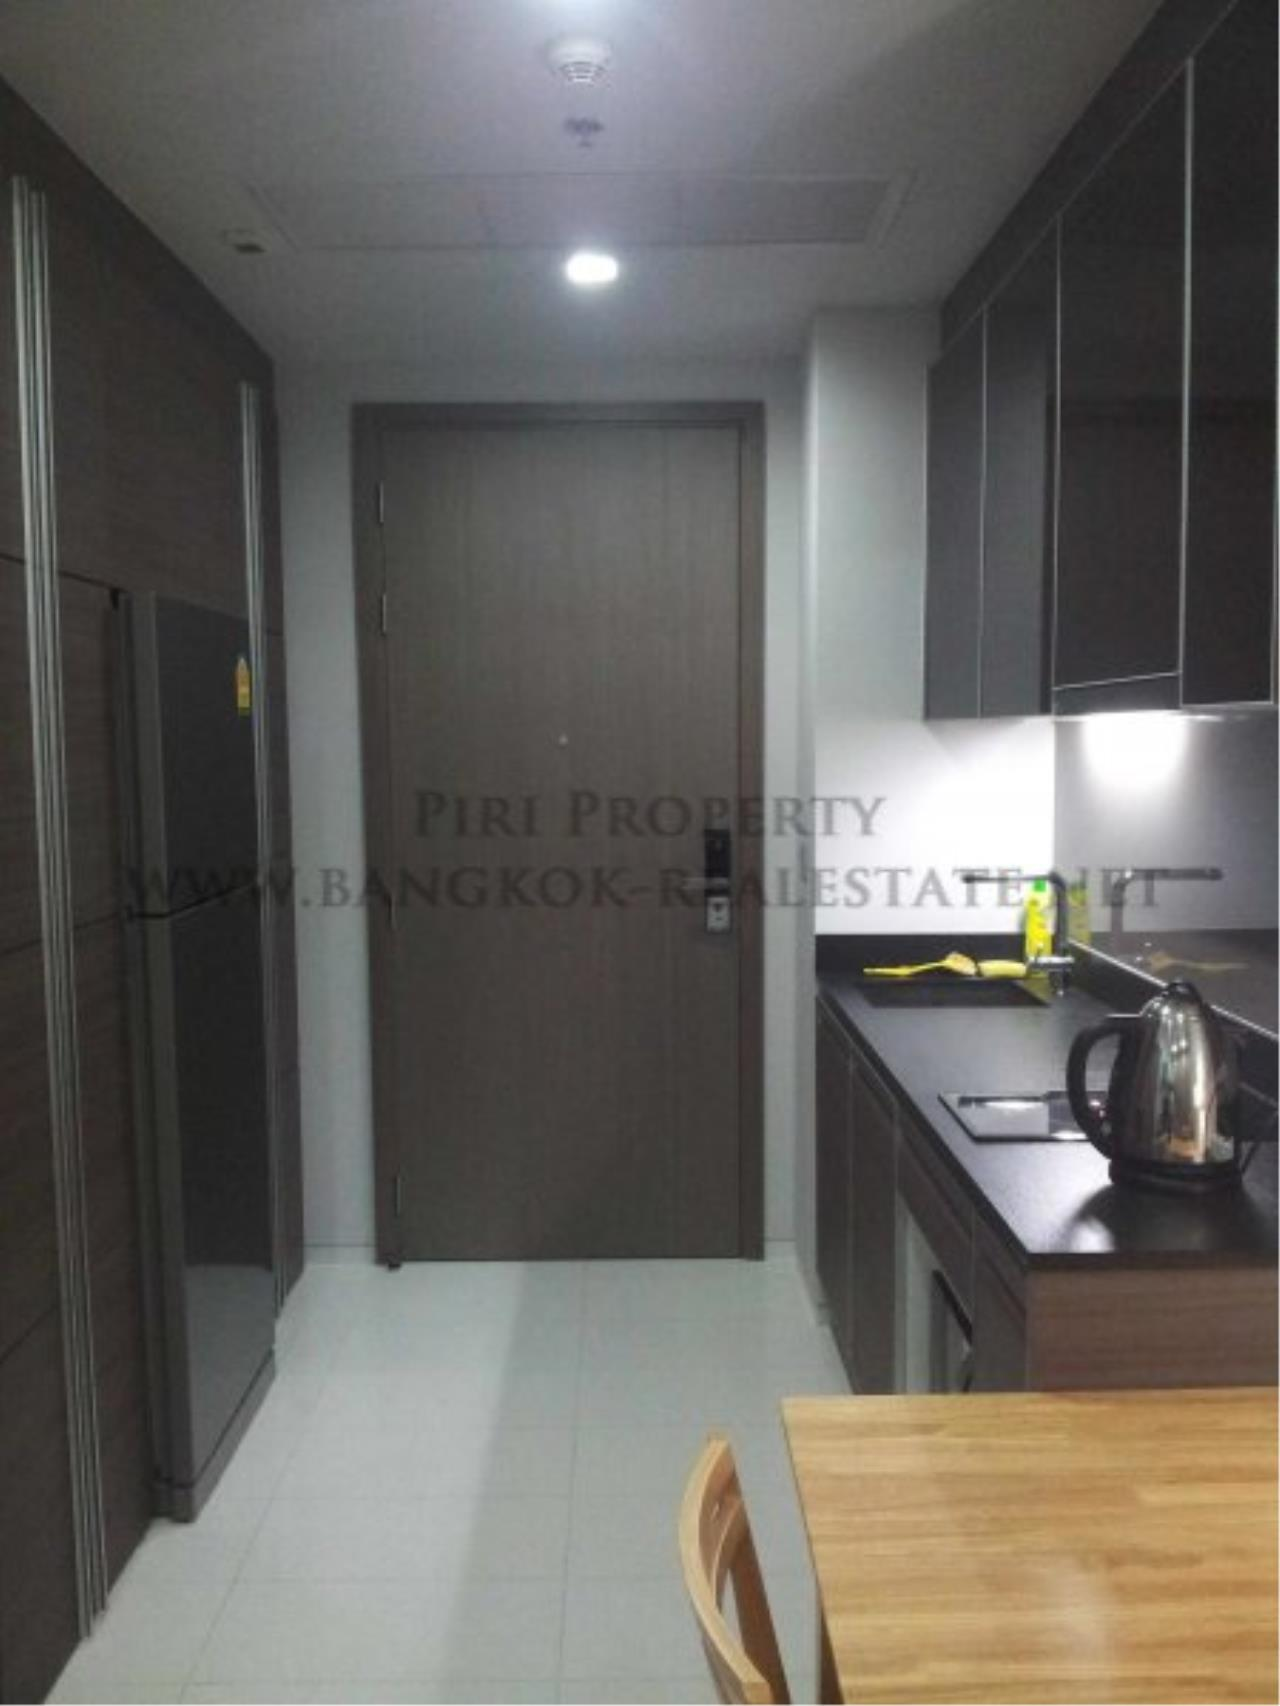 Piri Property Agency's Cozy 1 Bedroom Condo for Rent in Thonglor - Keyne by Sansiri 2